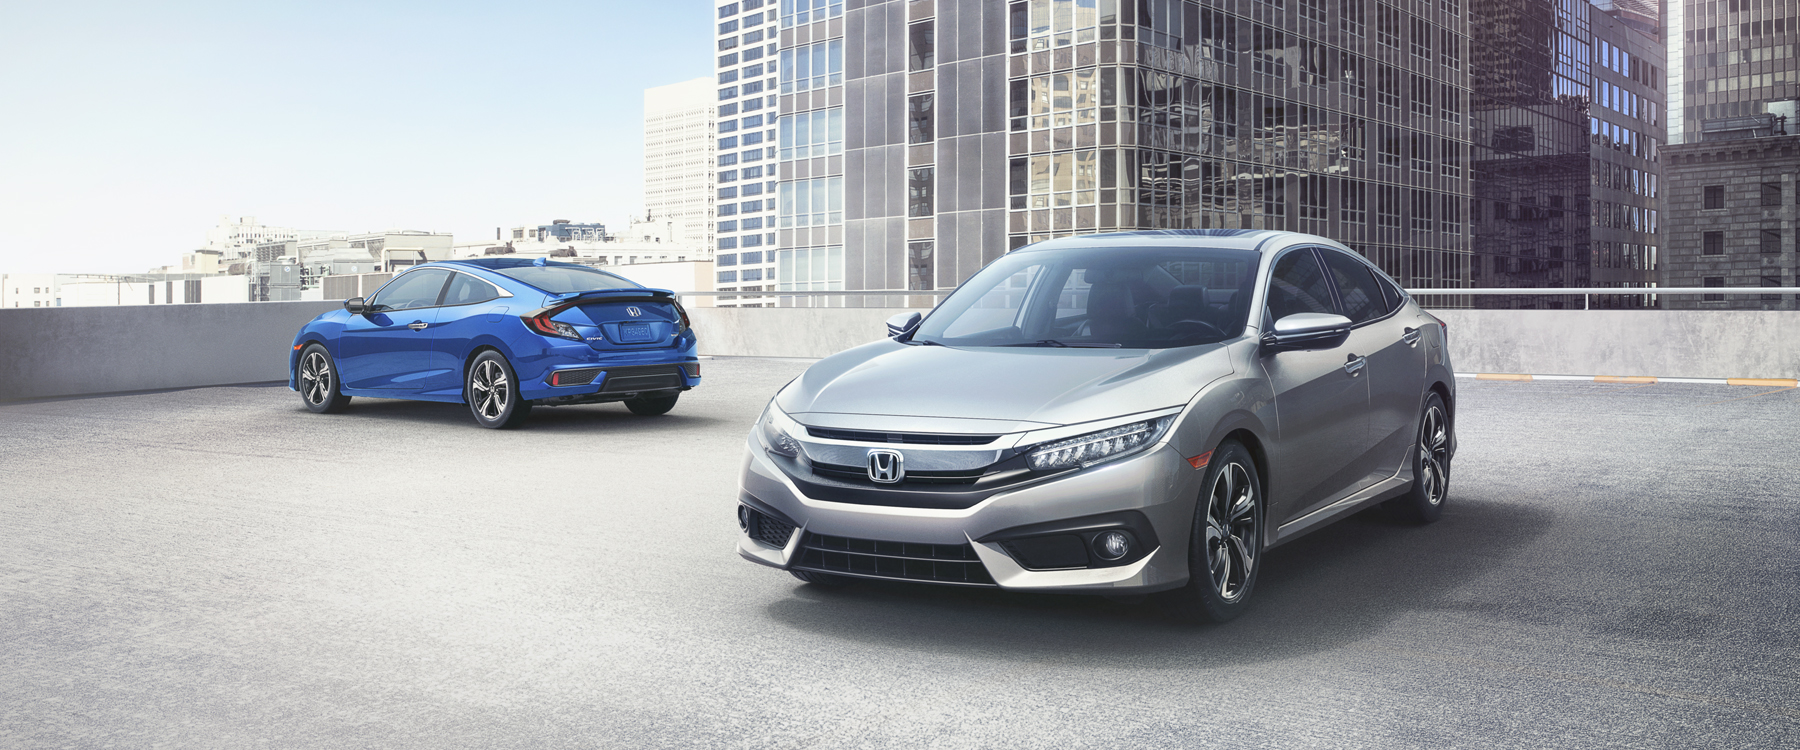 Back to school cars for tri state students for Honda civic dealership